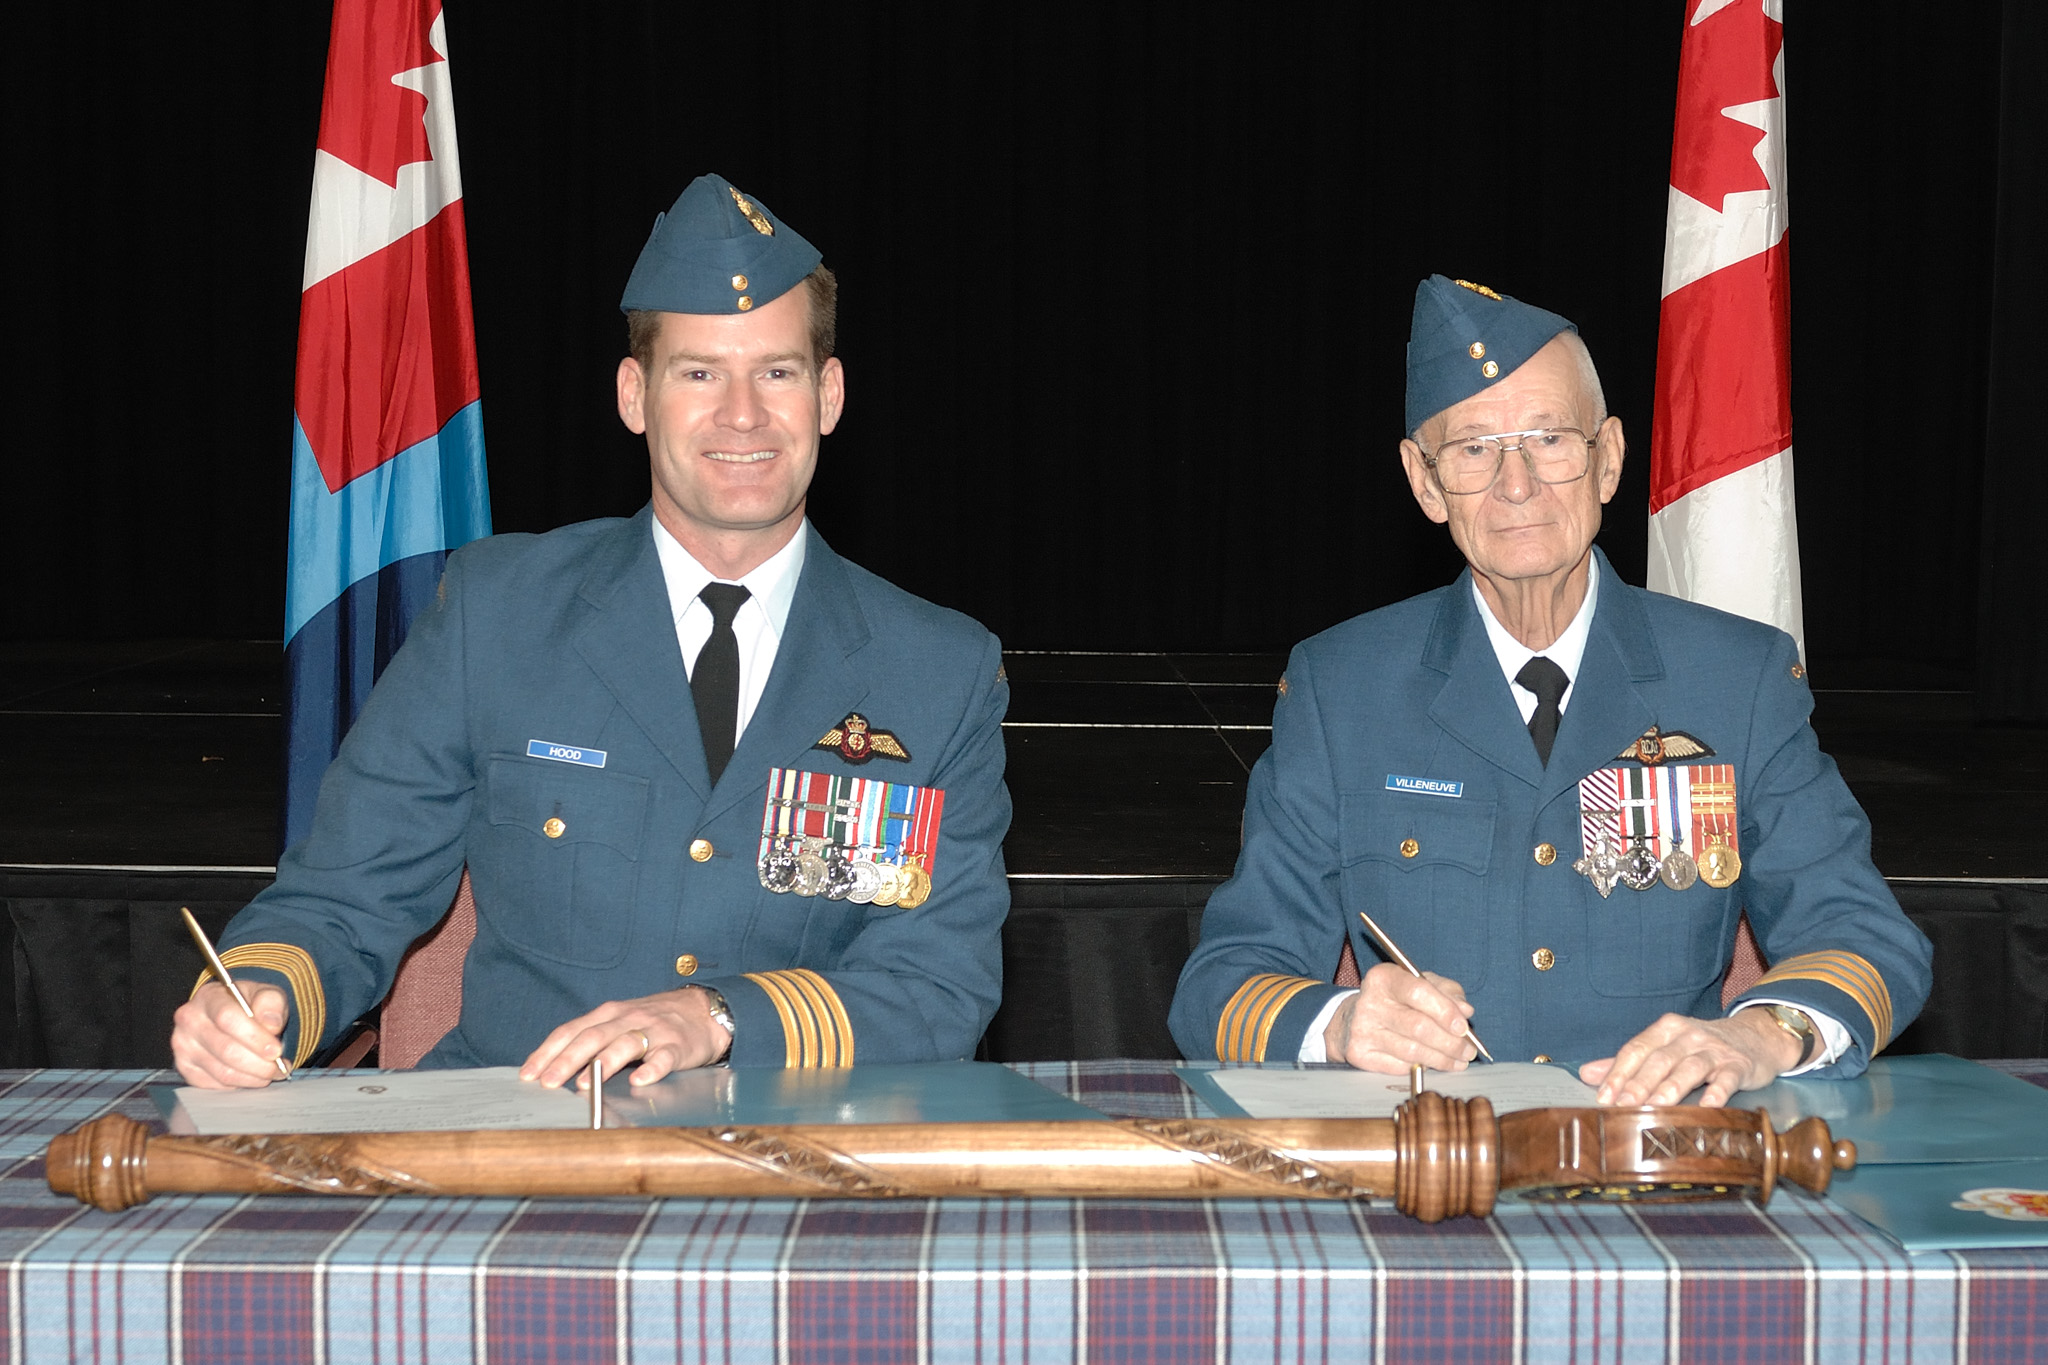 Colonel Mike Hood (left), commander of 8 Wing Trenton, Ontario, and Lieutenant-Colonel (retired) Fern Villeneuve sign the documents investing Lieutenant-Colonel Villeneuve as honorary colonel of 8 Air Maintenance Squadron in Trenton on December 4, 2008. PHOTO: Private Tina Gillies, TN2008-0816-01